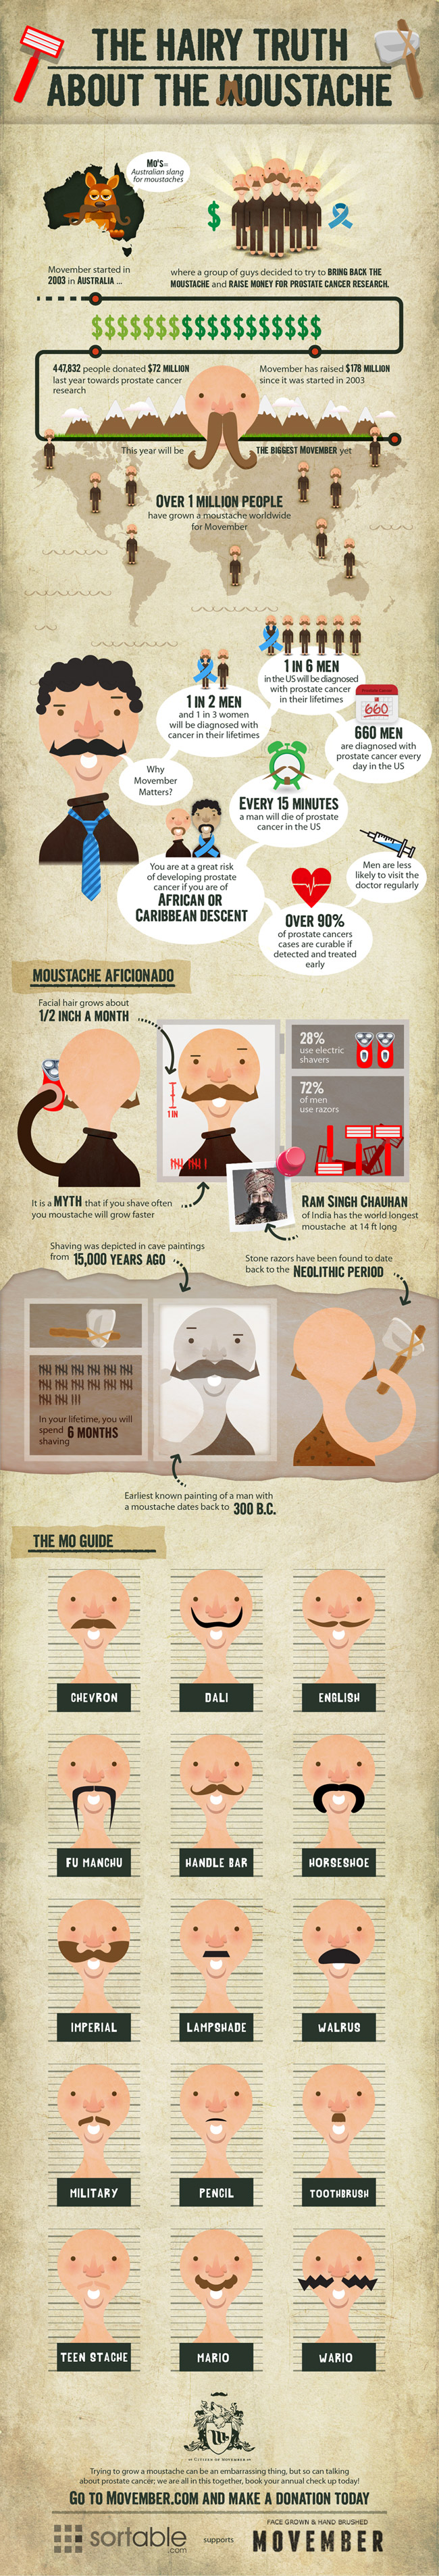 The Hairy Truth About Moustache, Movember Infographic